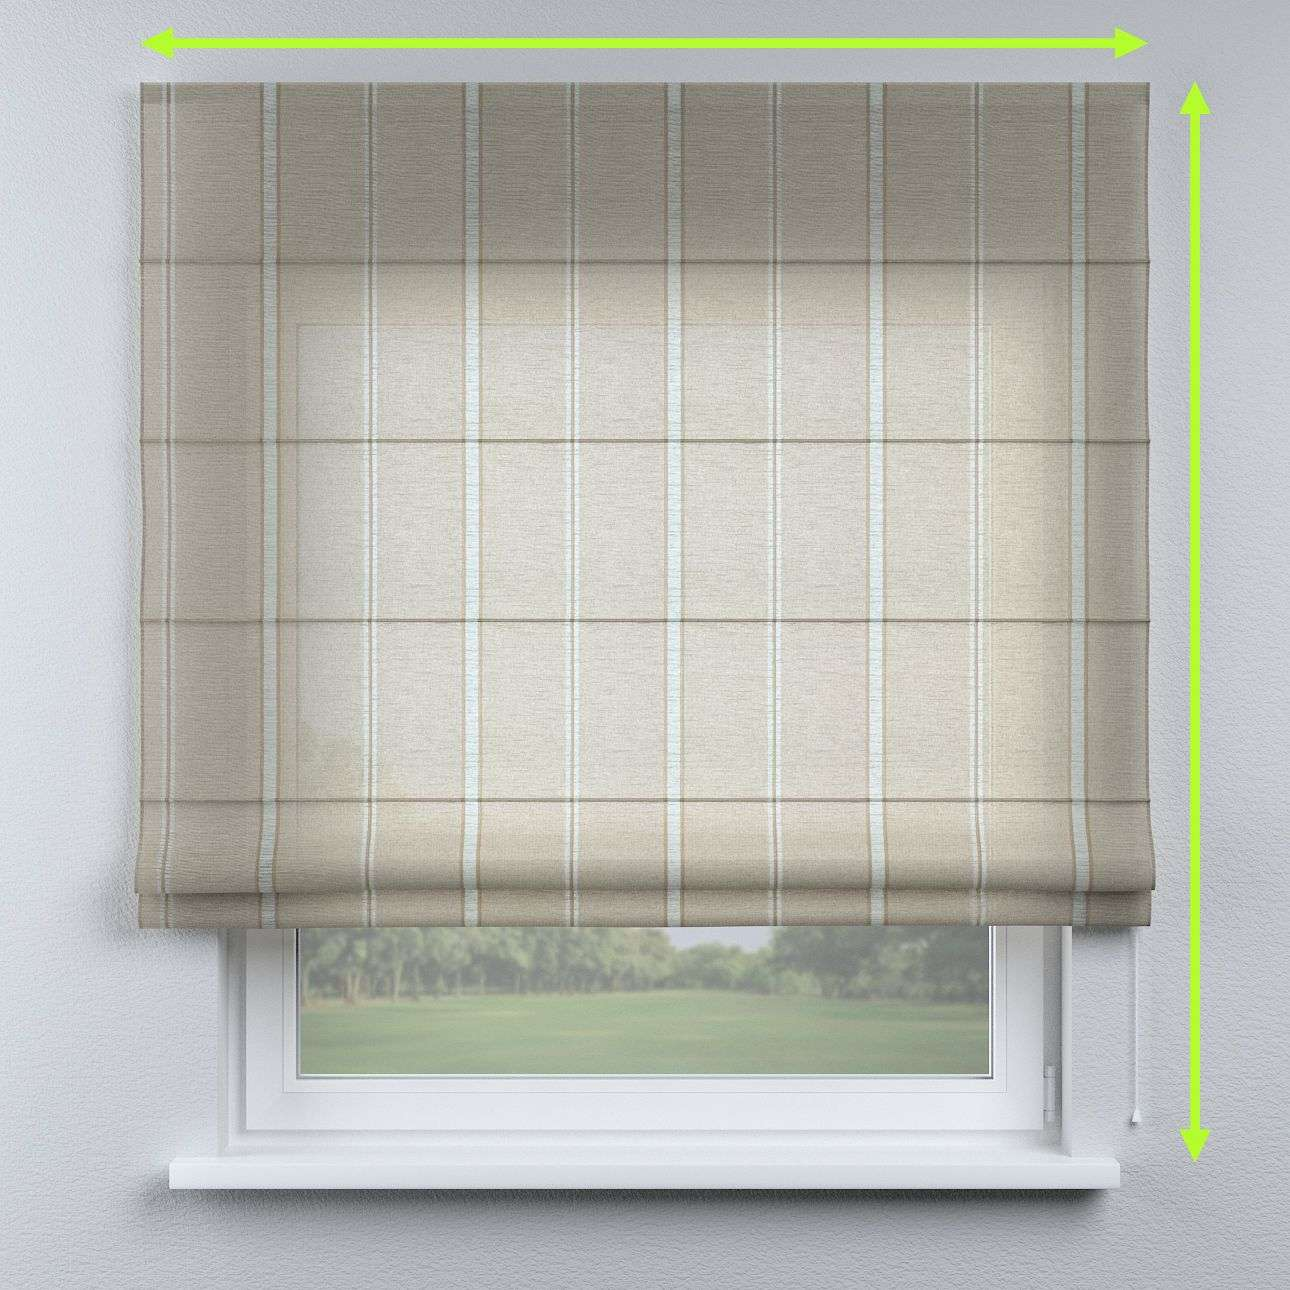 Capri roman blind in collection Romantica, fabric: 141-32